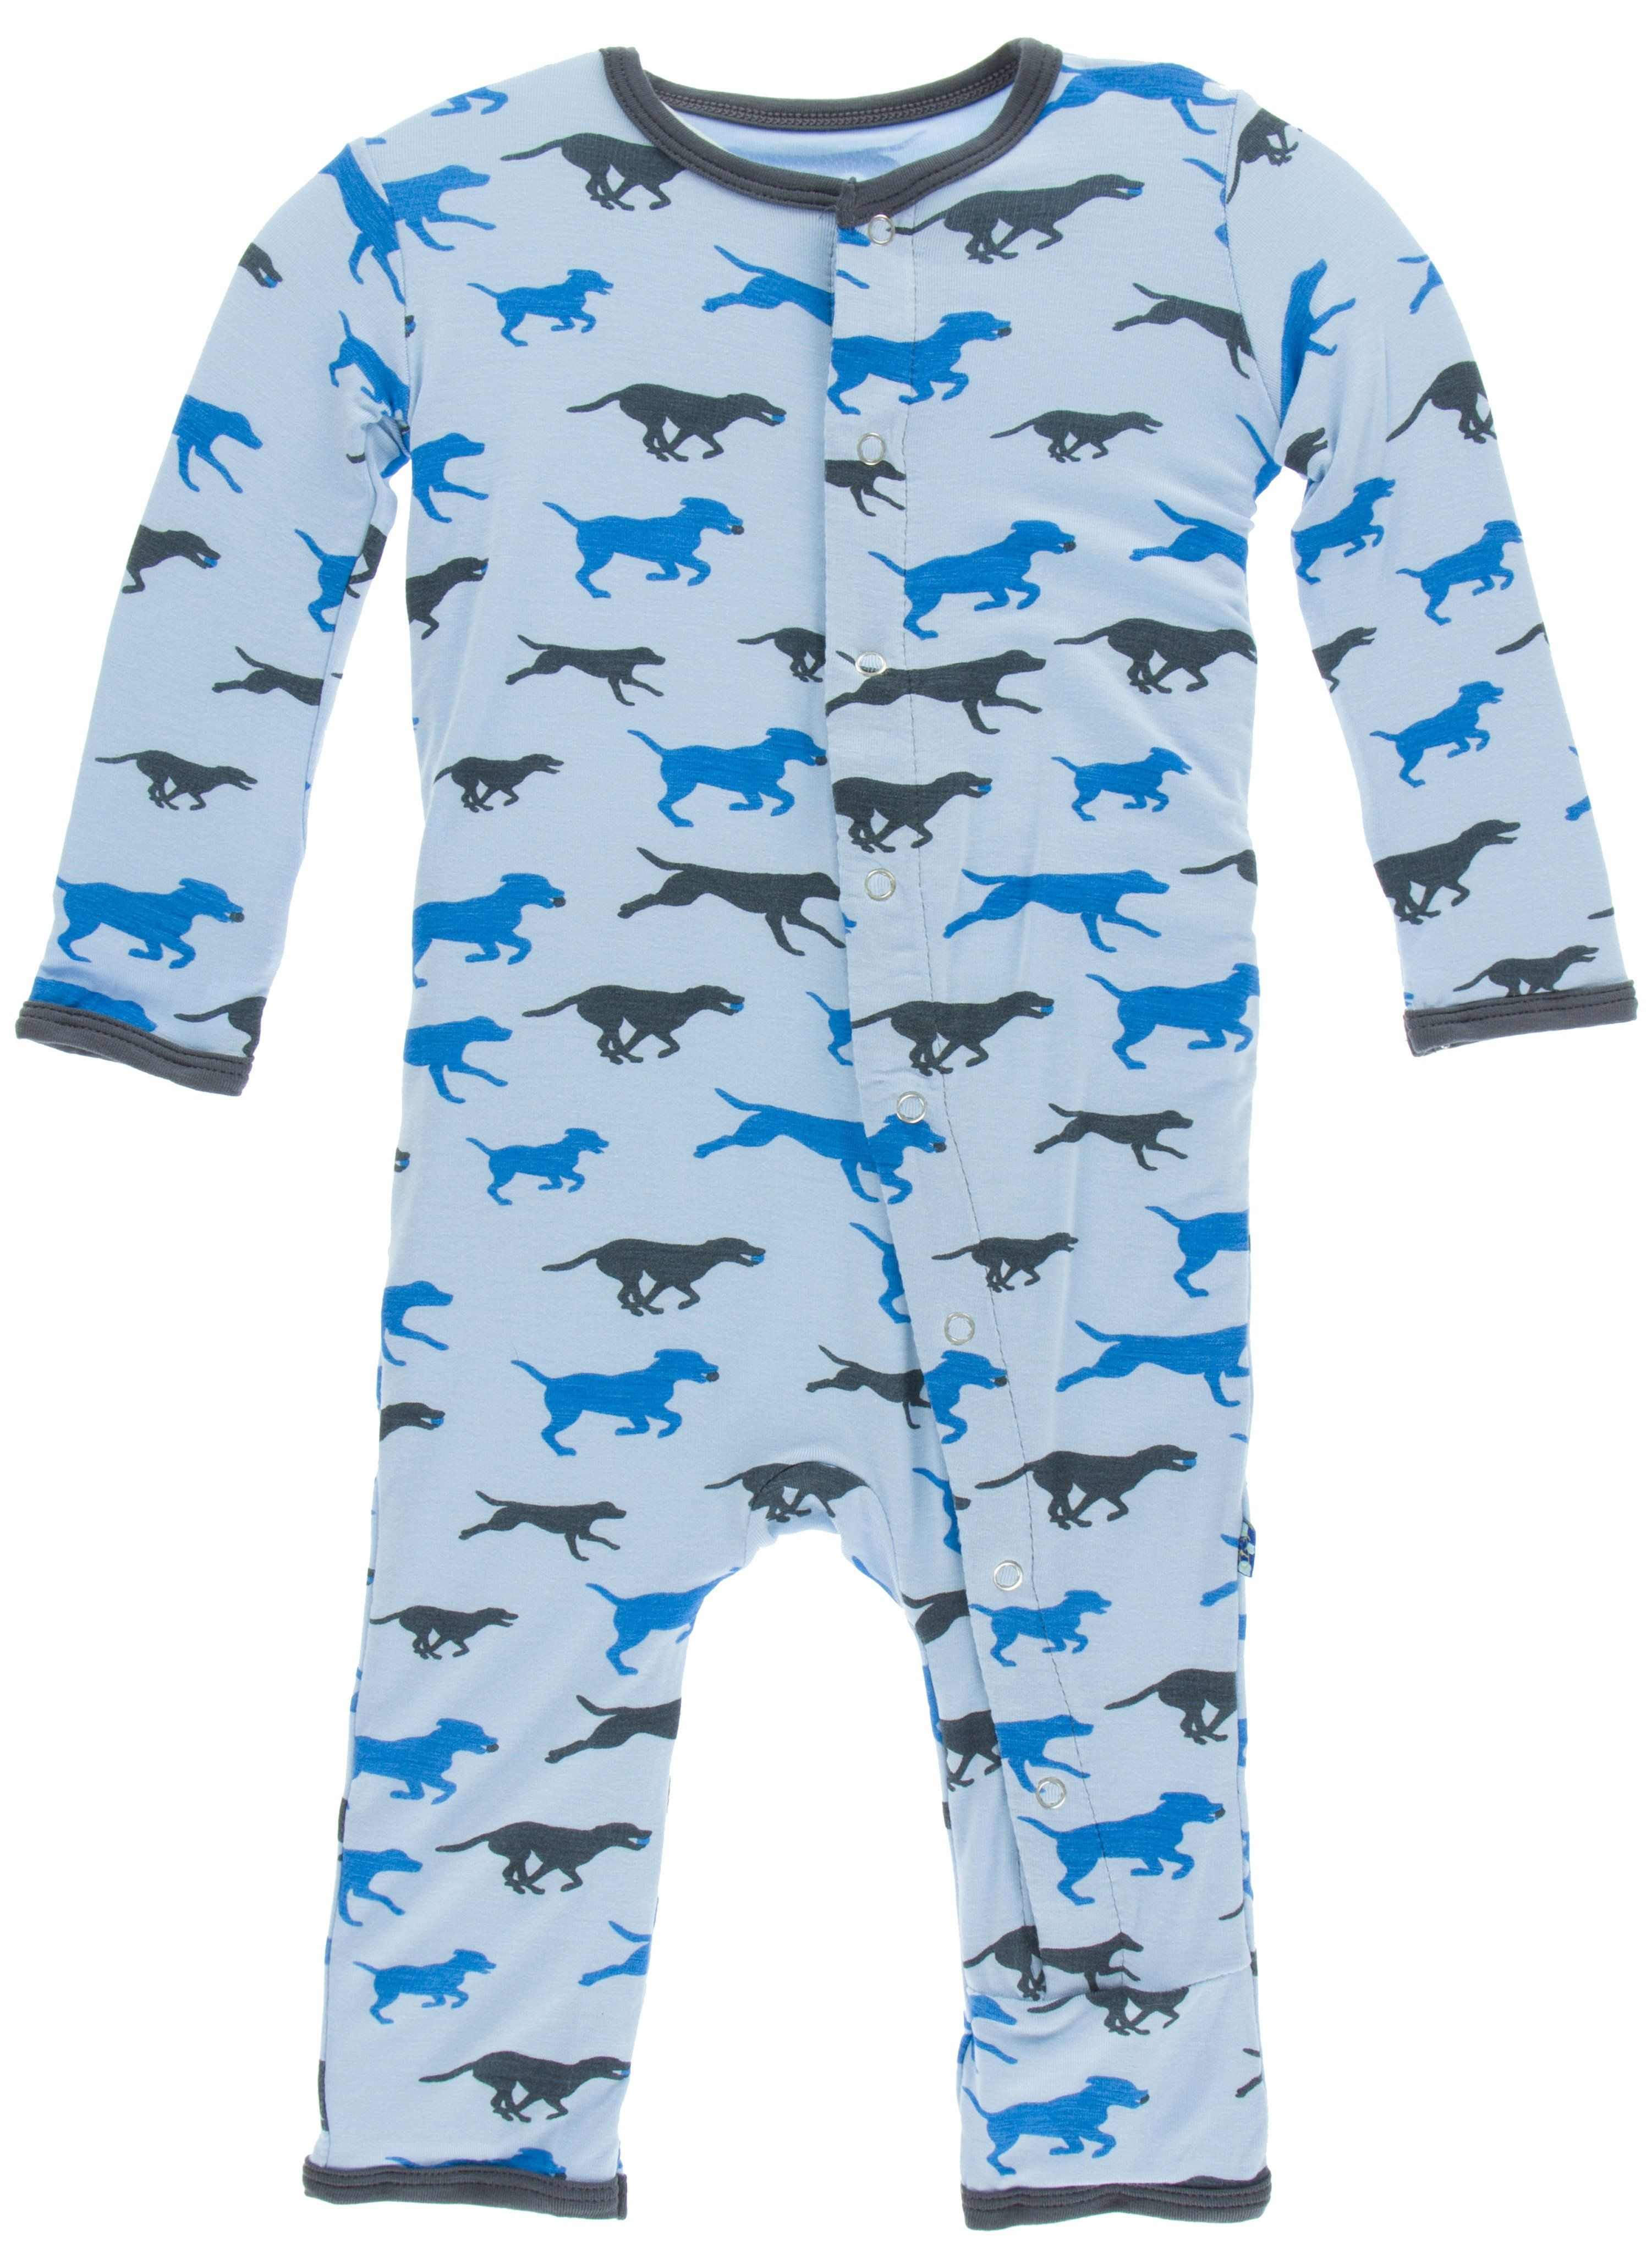 4a97bf8f2 KicKee Pants Pond Running Labs Print Fitted Coverall w Snaps ...